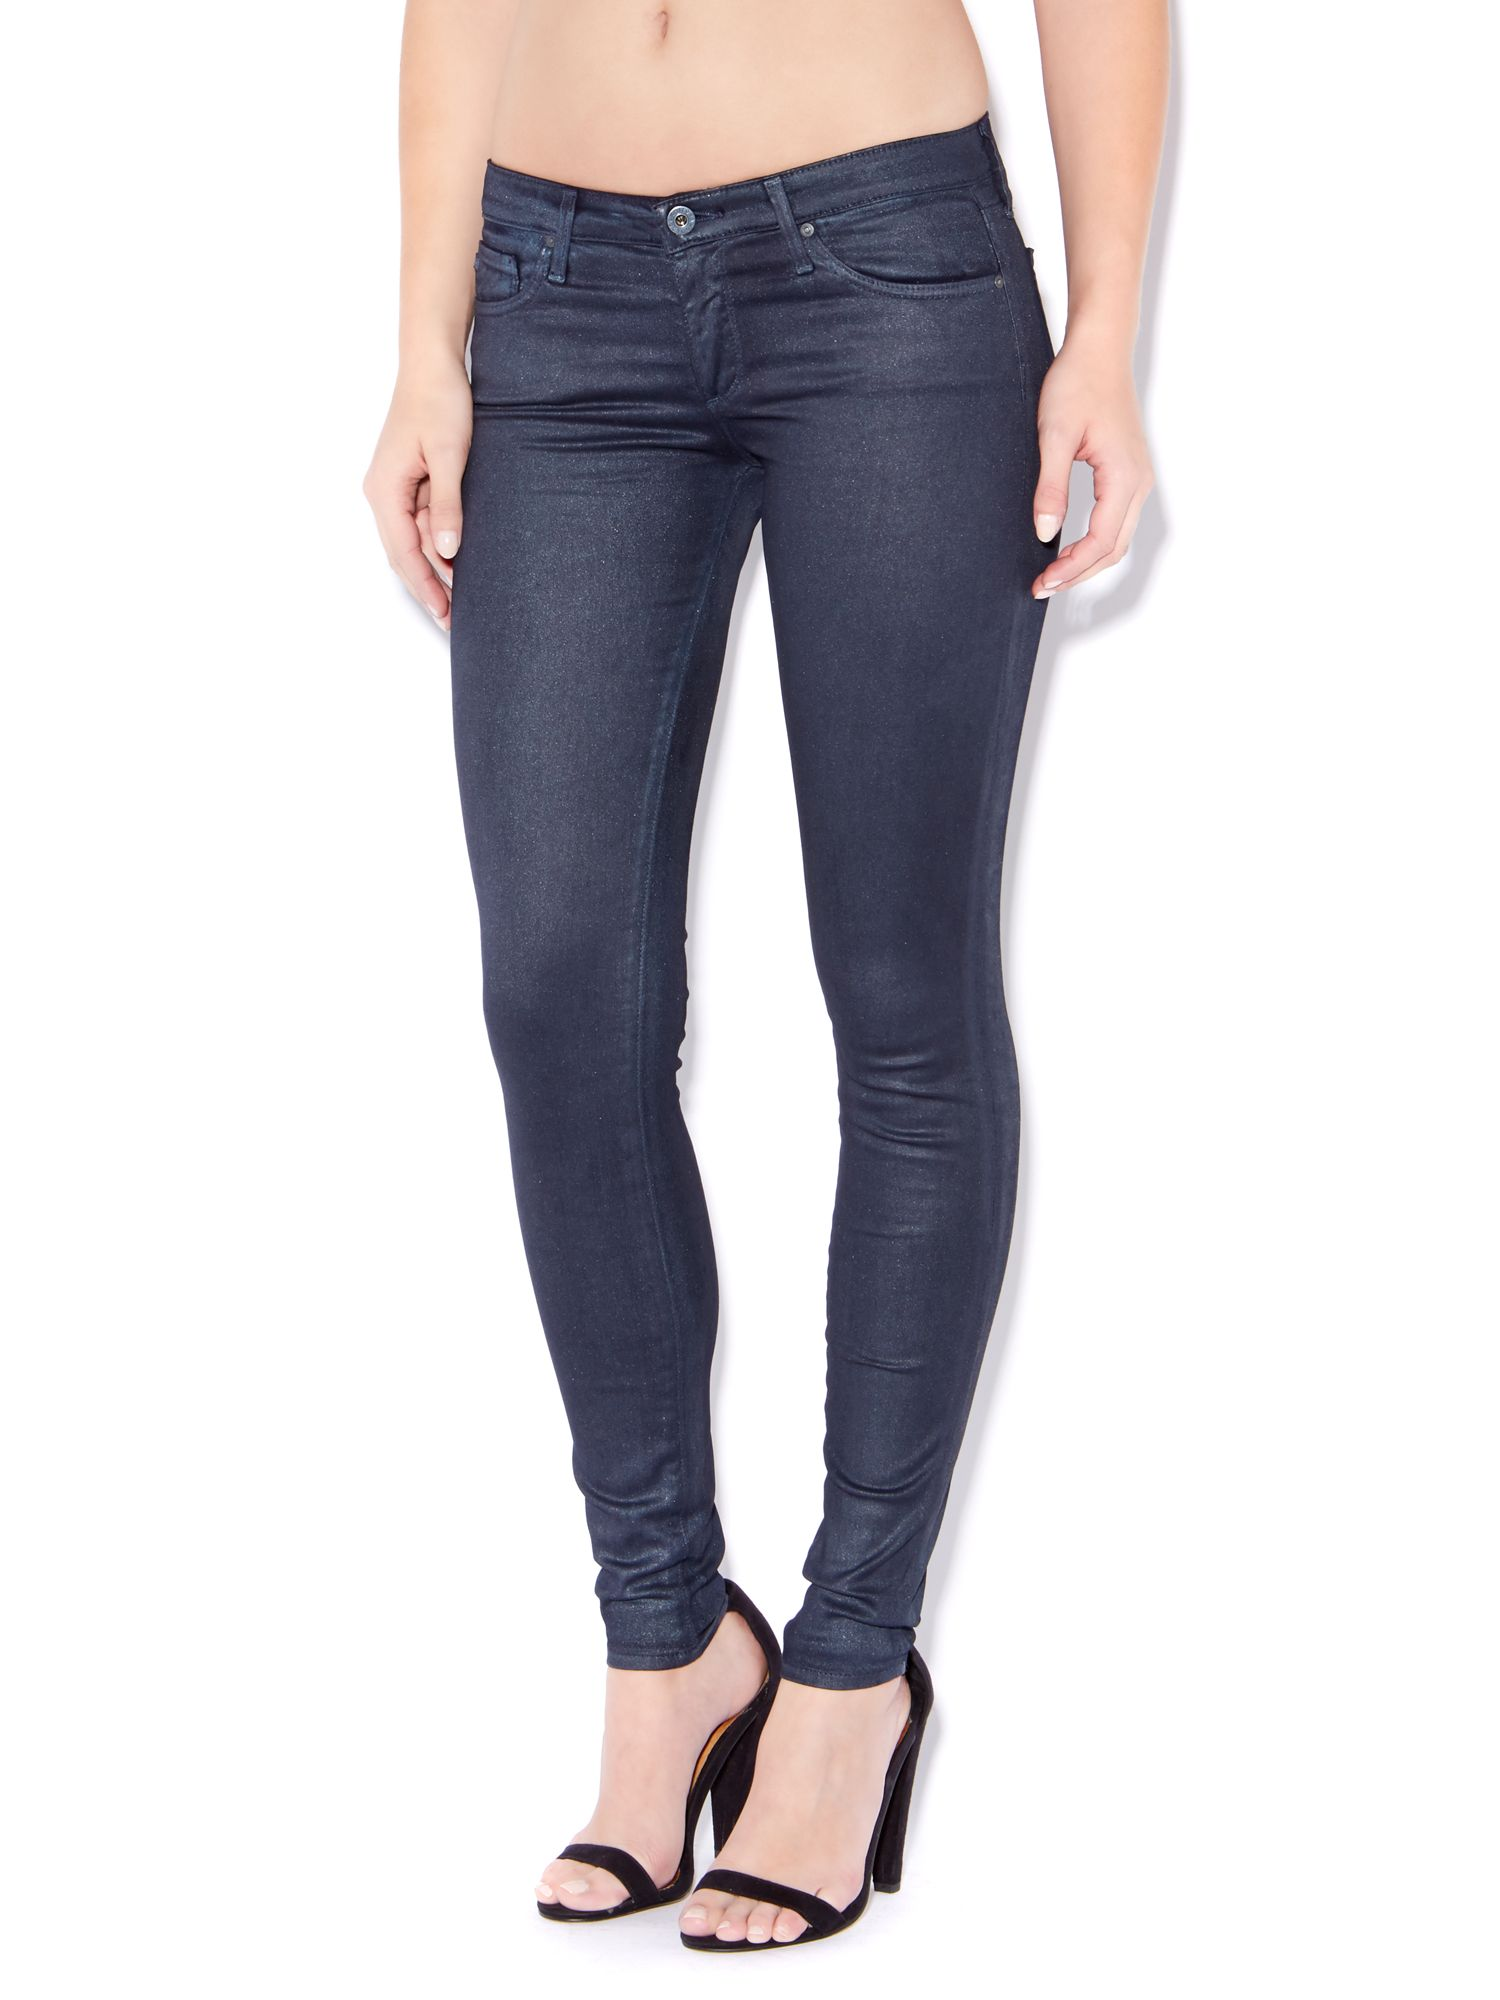 The Absolute Legging skinny coated jeans